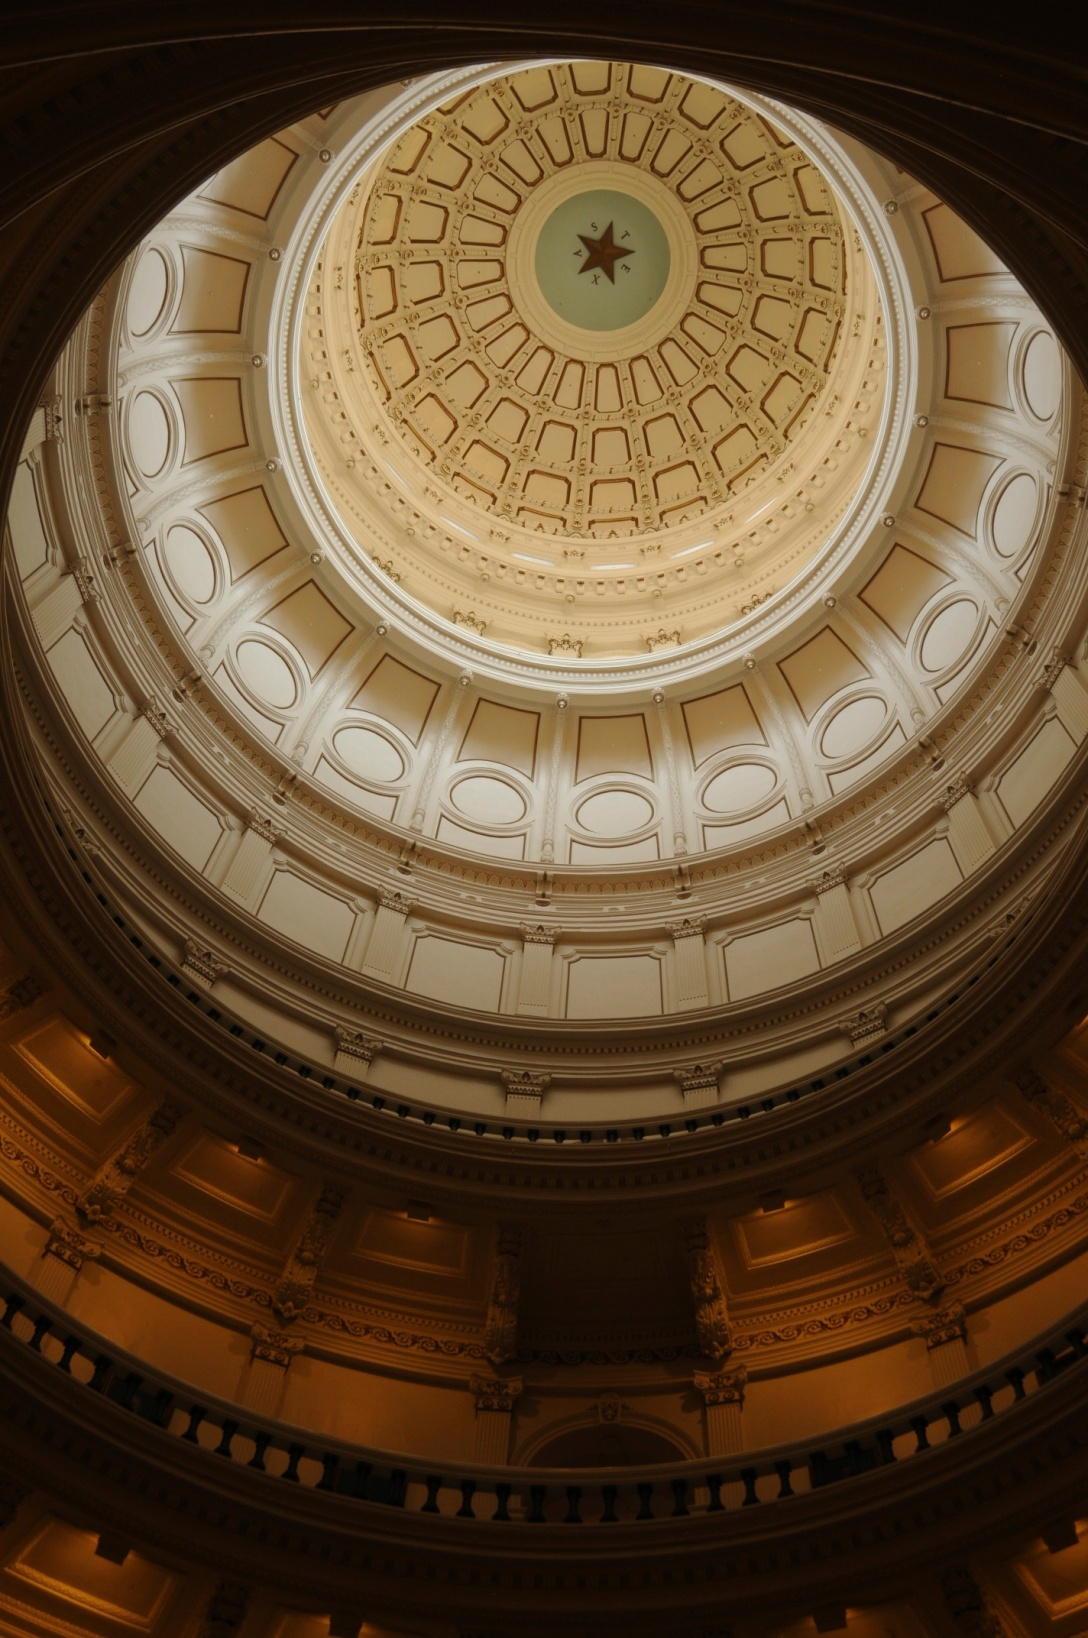 This is the capital dome.